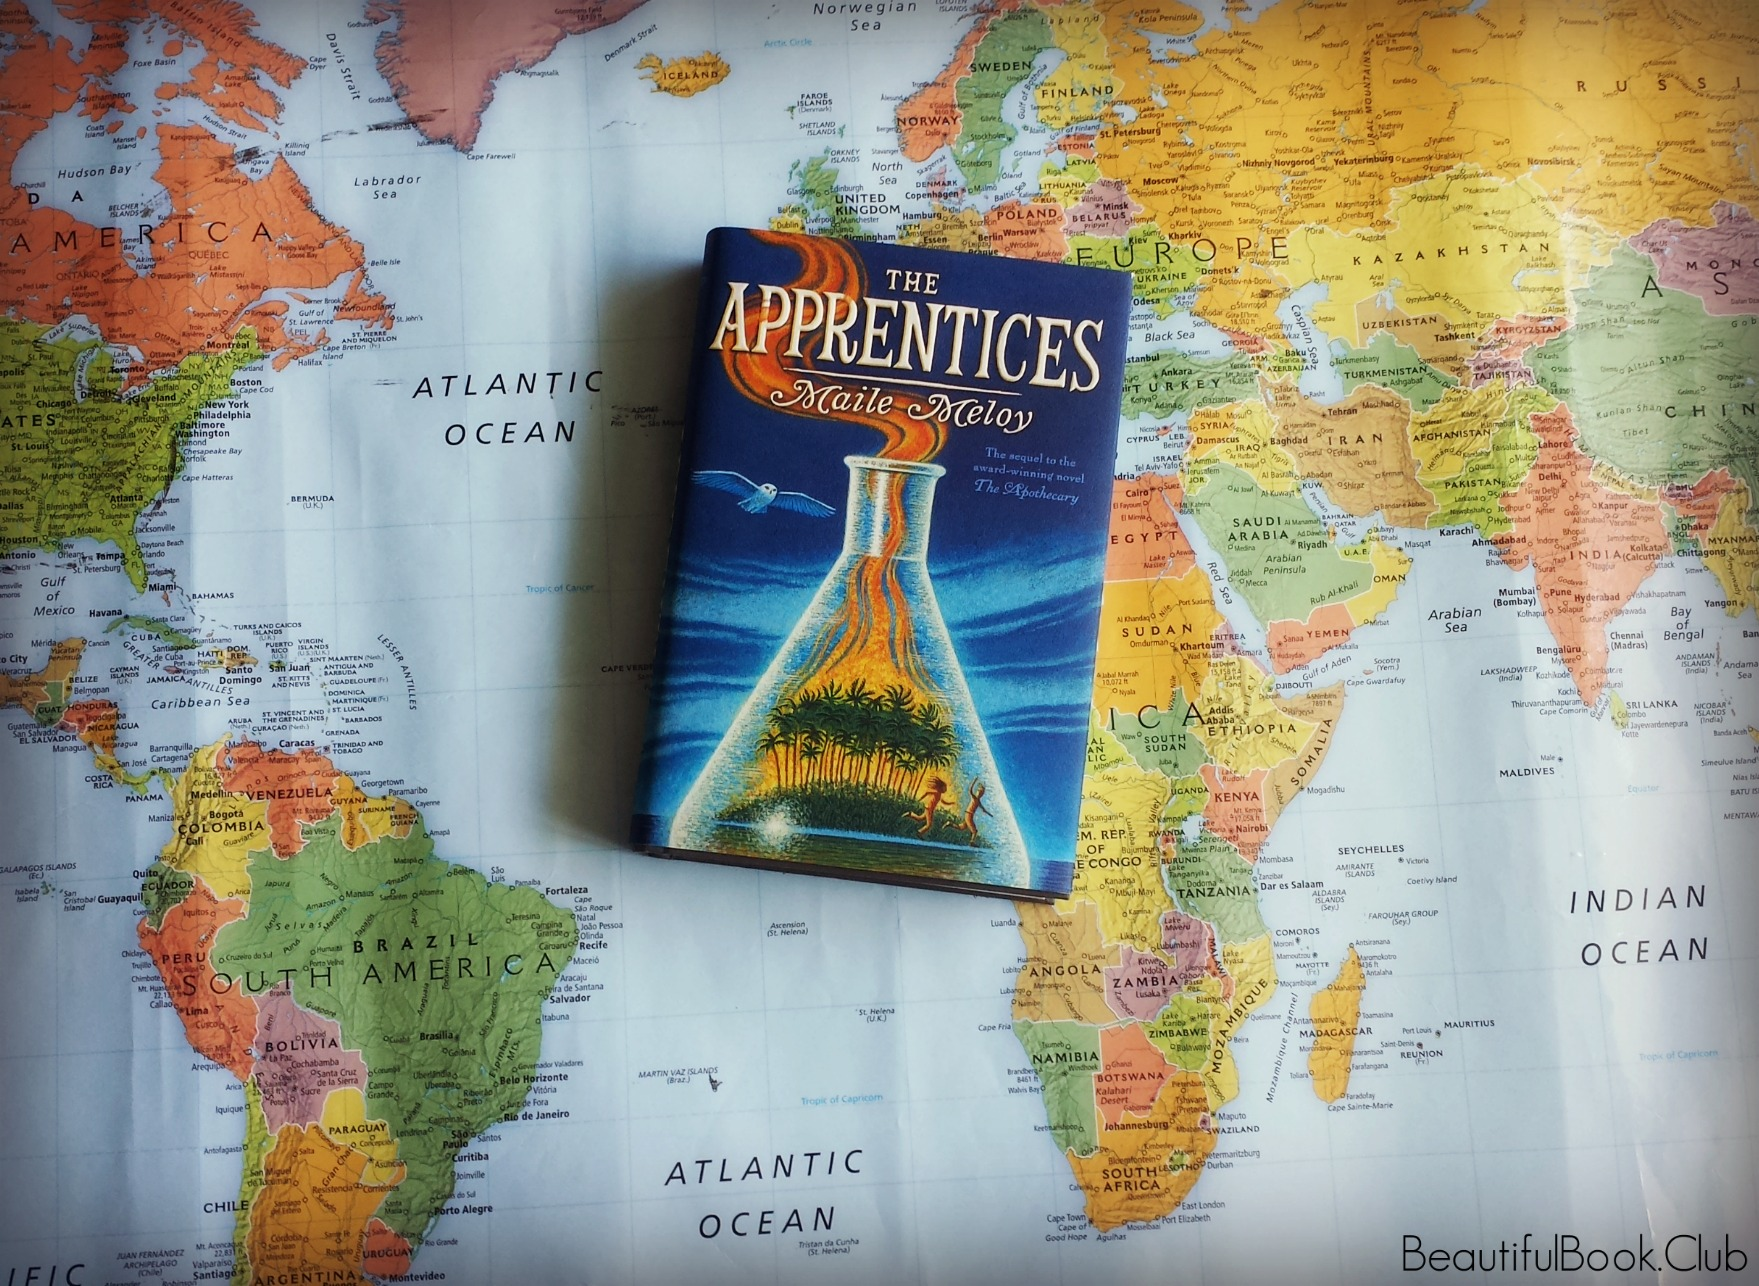 The Apprentices by maile meloy front cover on a map